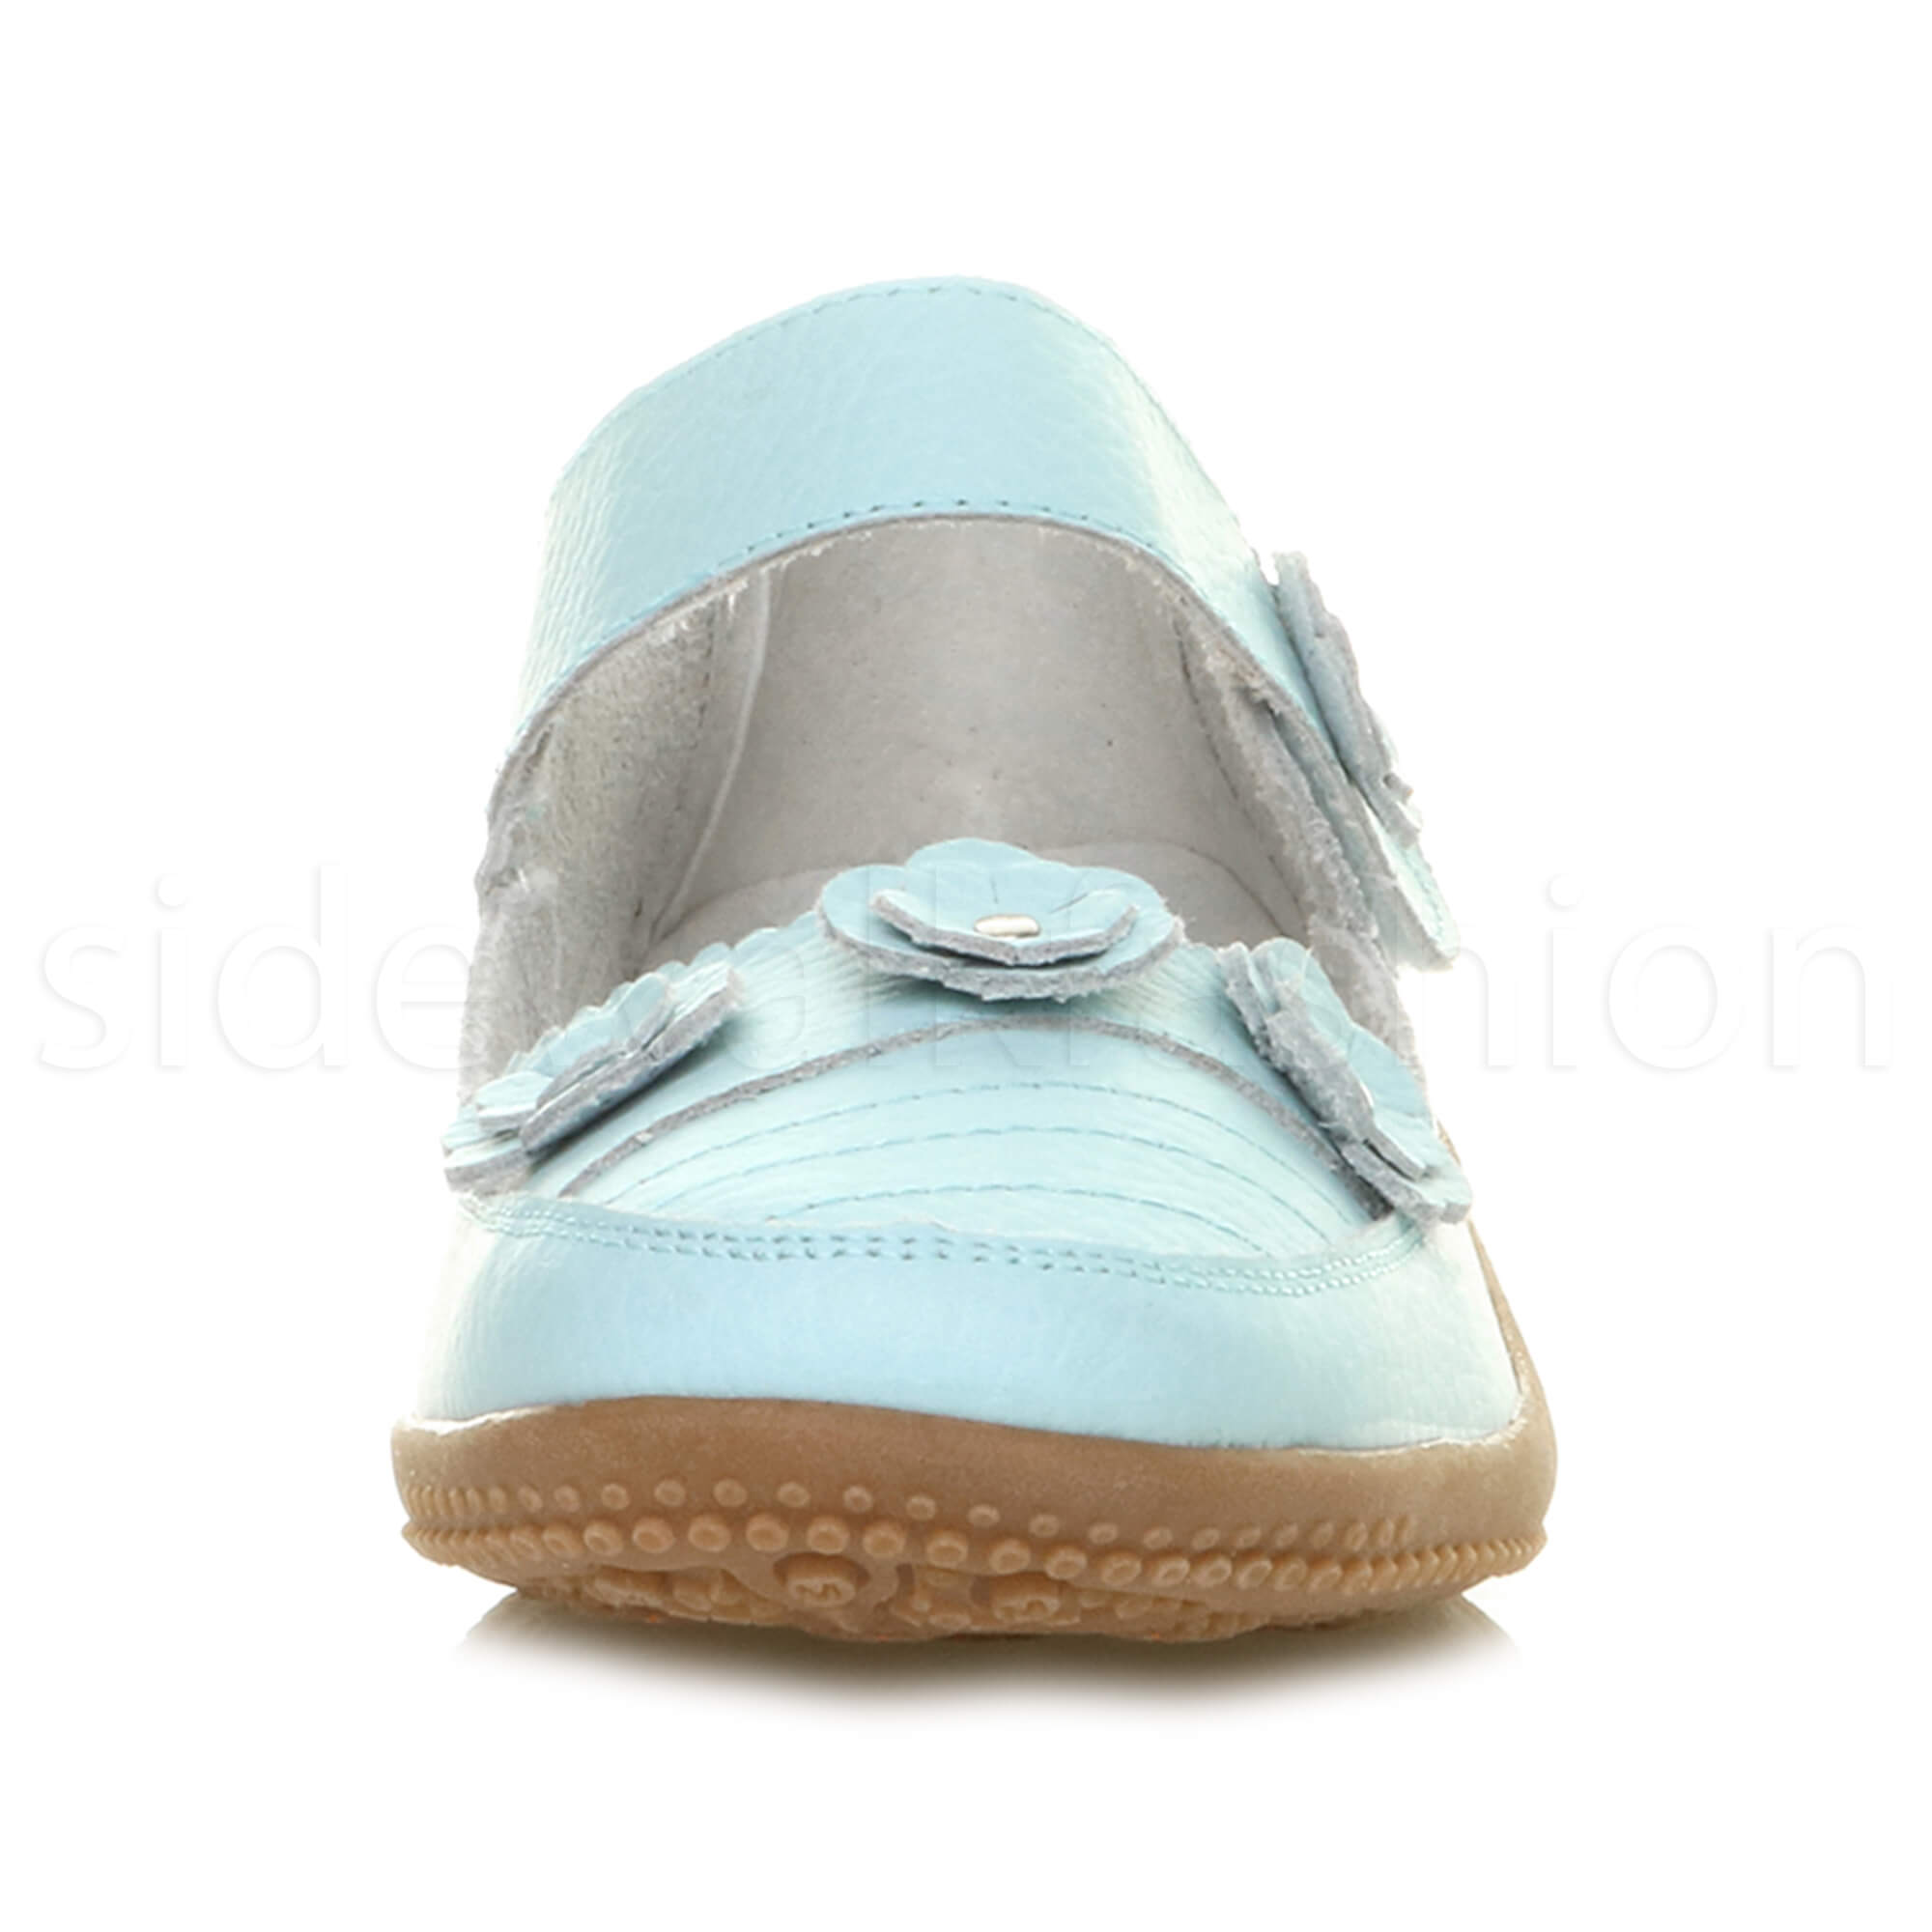 Womens-ladies-leather-comfort-walking-casual-sandals-mary-jane-strap-shoes-size thumbnail 51